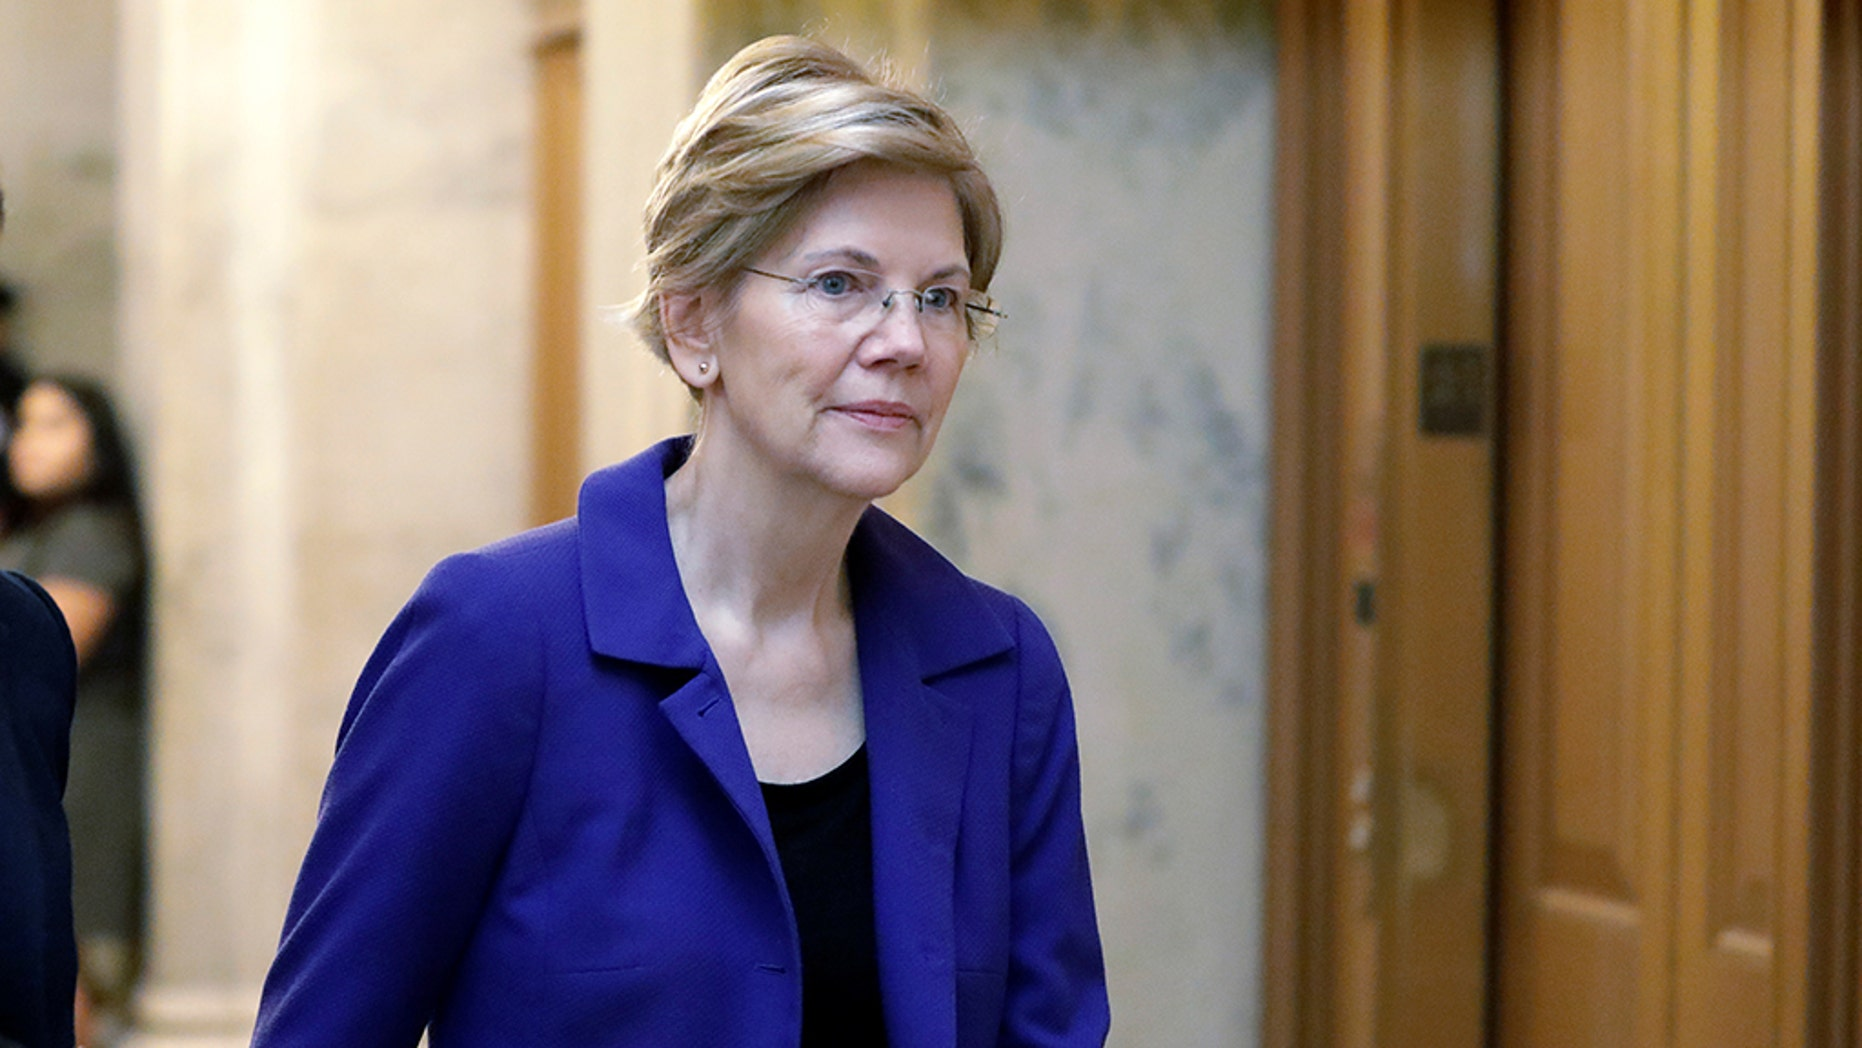 Massachusetts politicians – including Democratic Sen. Elizabeth Warren – who may be mulling a 2020 White House run should think carefully about the decision, The Boston Globe's editorial board suggested in a piece posted Thursday.